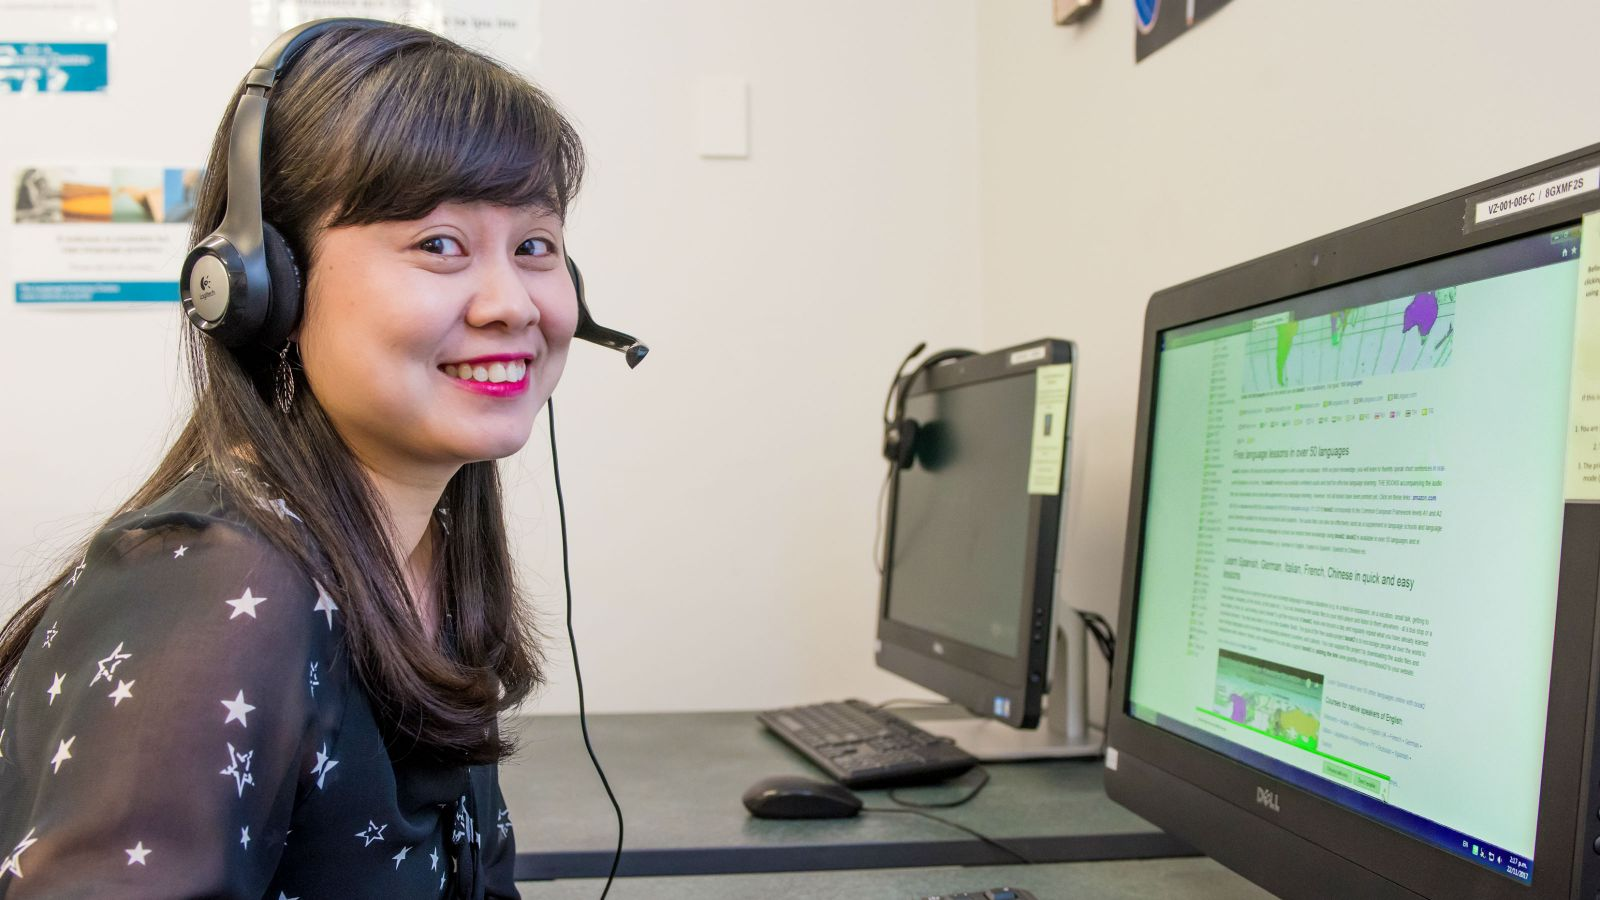 Student with headset practising language online.